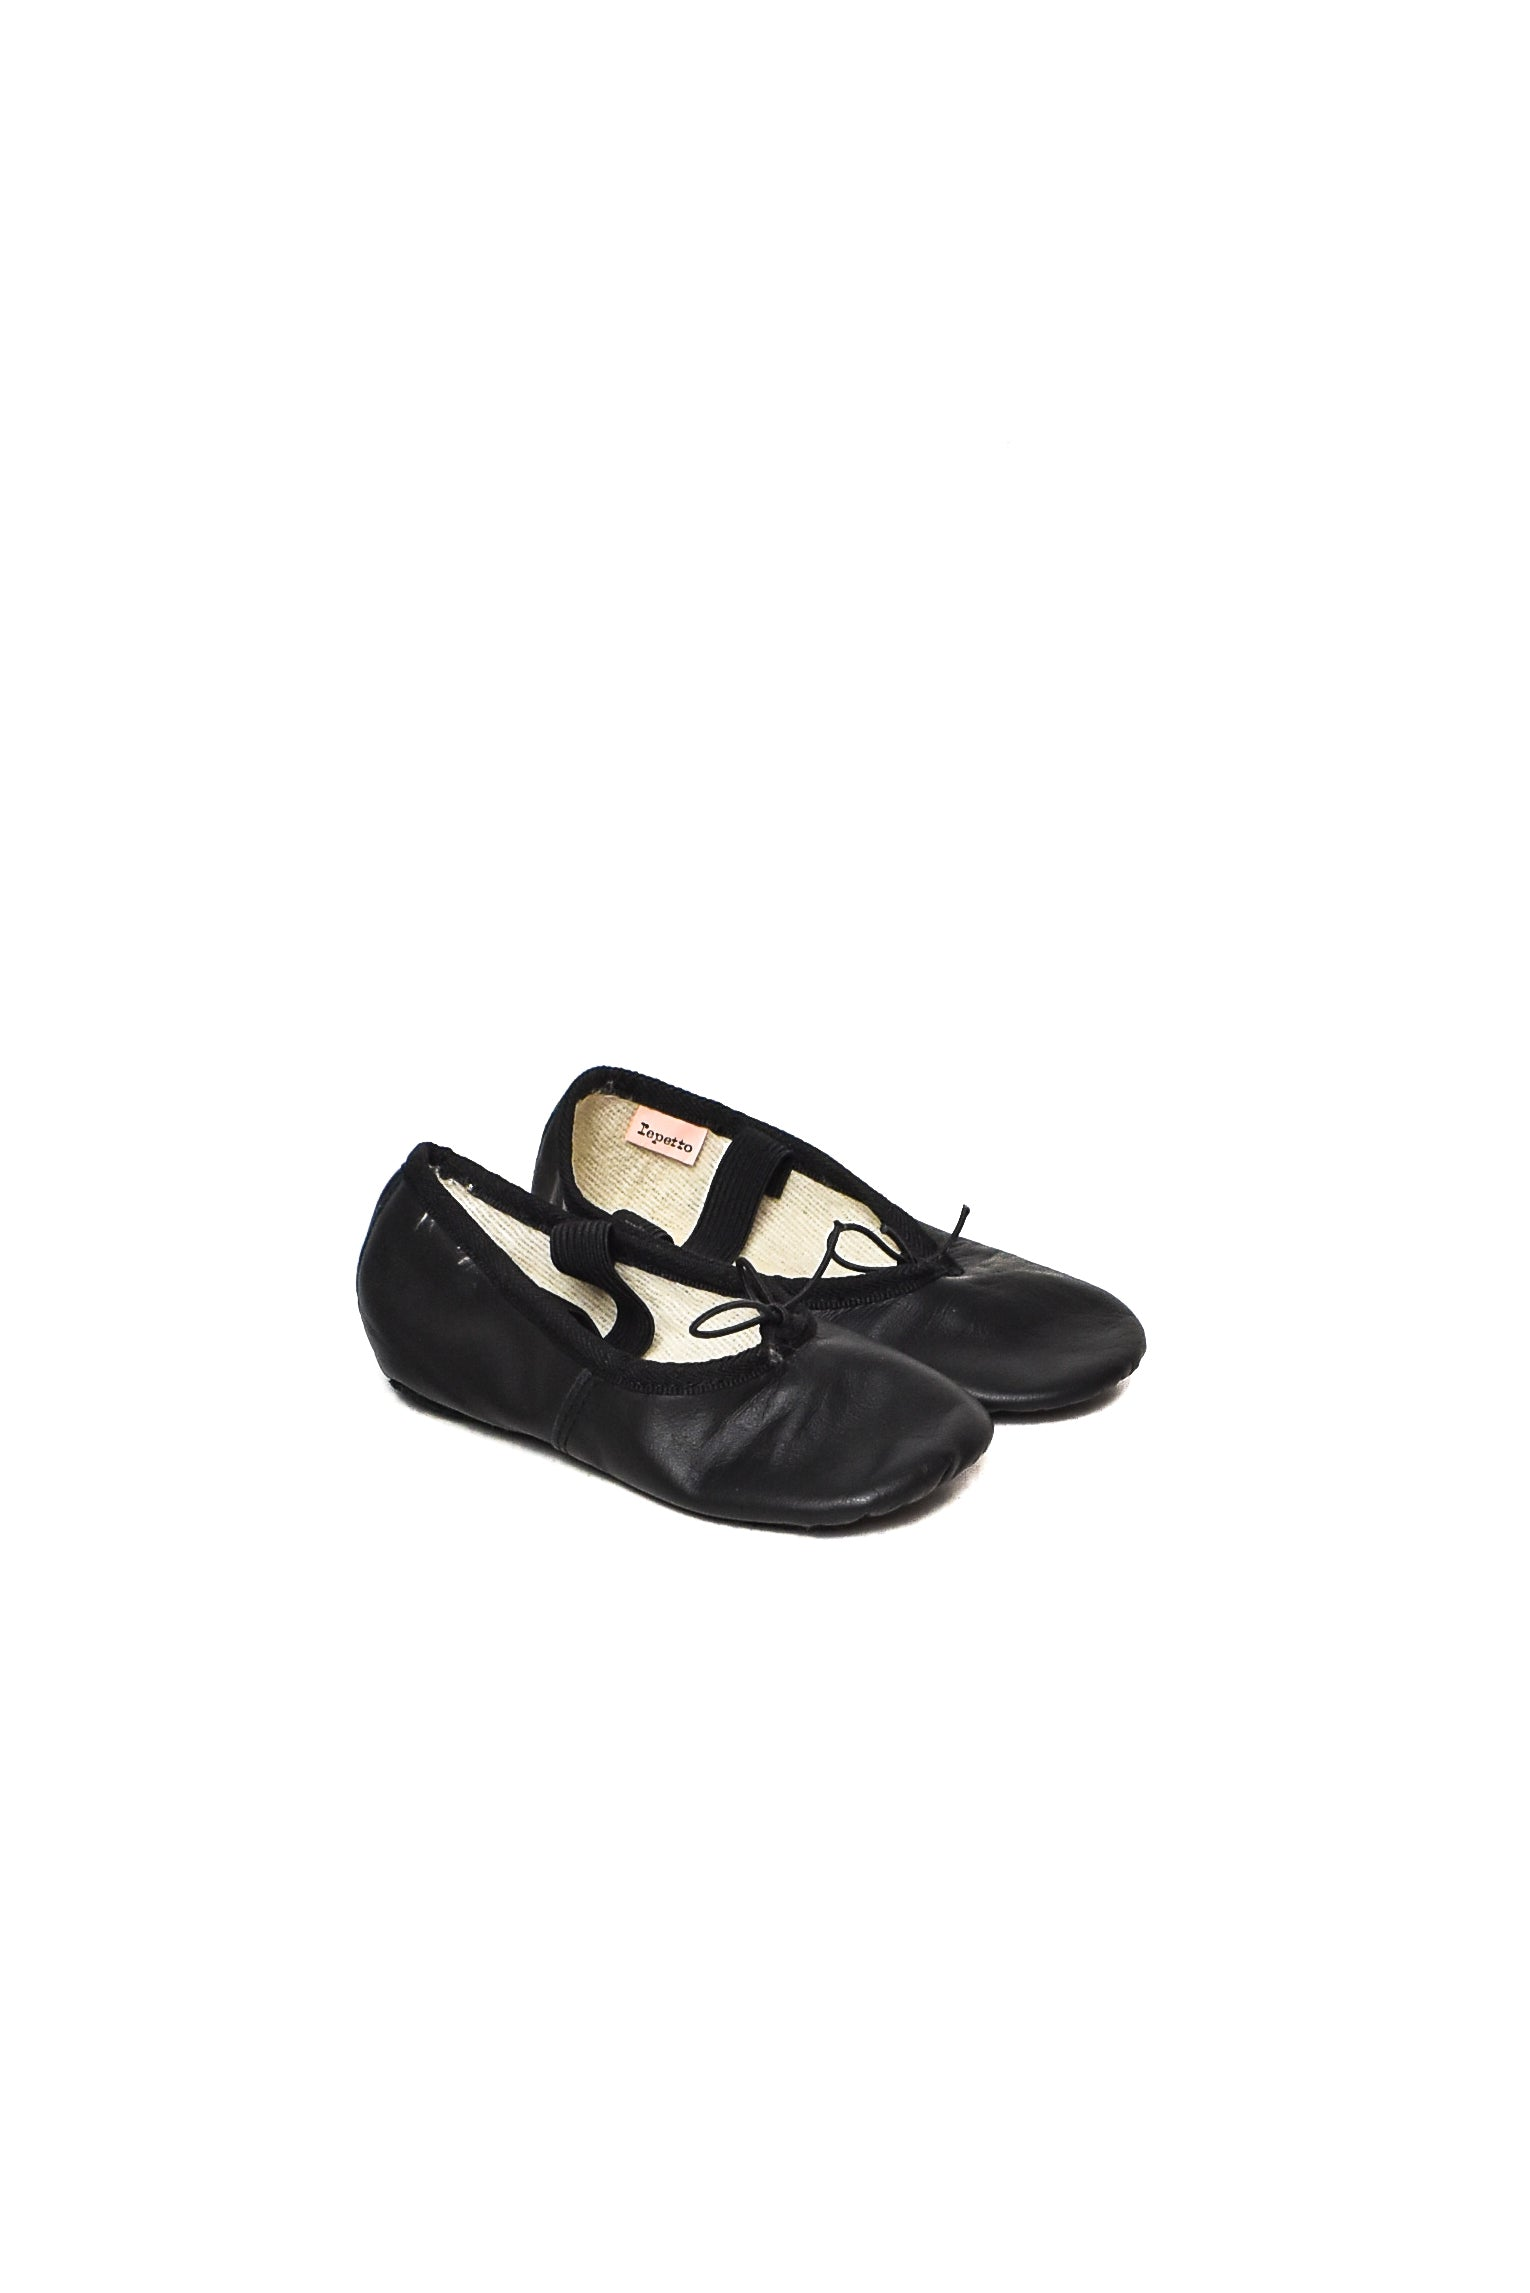 10007873 Repetto Kids~Shoes 4T (EU 26) at Retykle